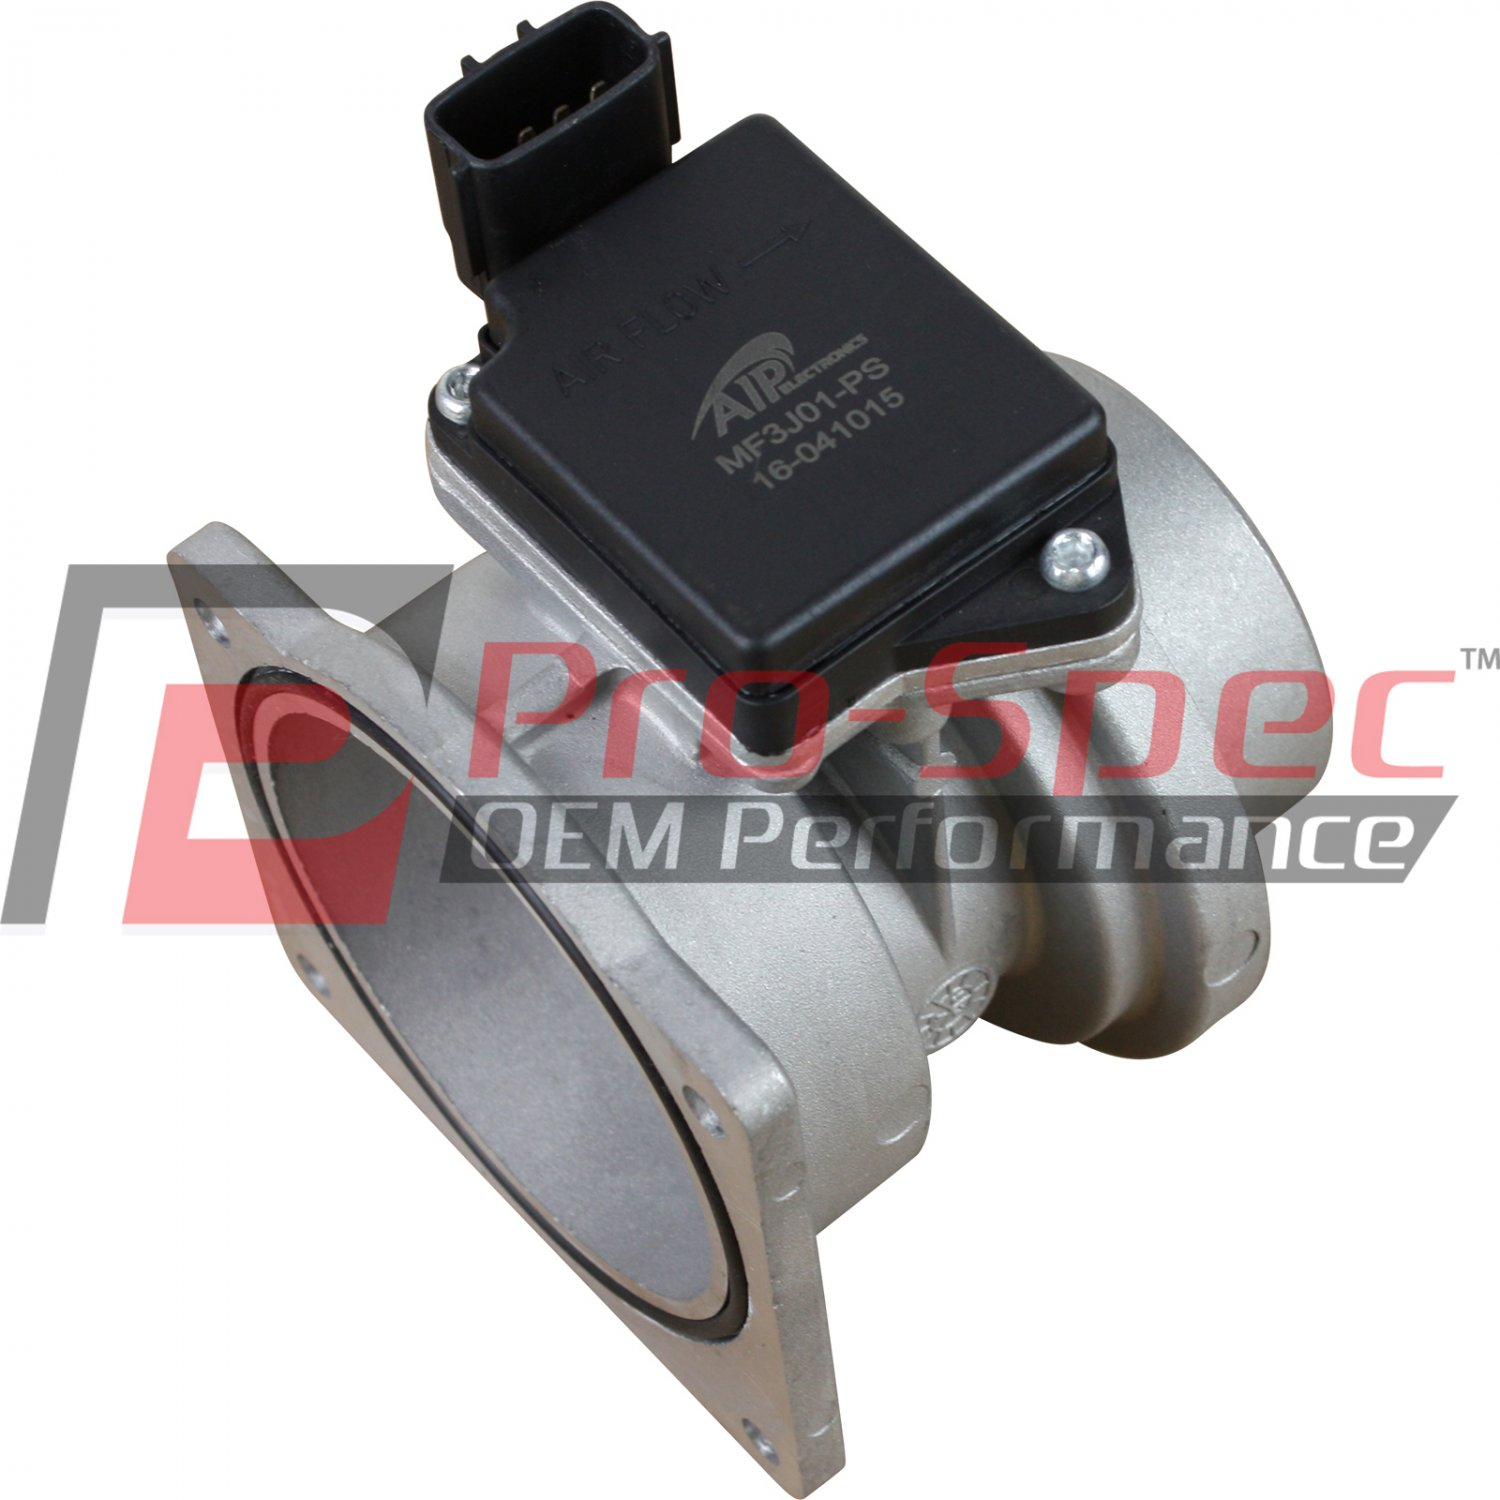 Brand New Mass Air Flow Sensor Meter For 1995-1999 Nissan 200SX & Sentra and Infiniti G20 Oem Fit MF